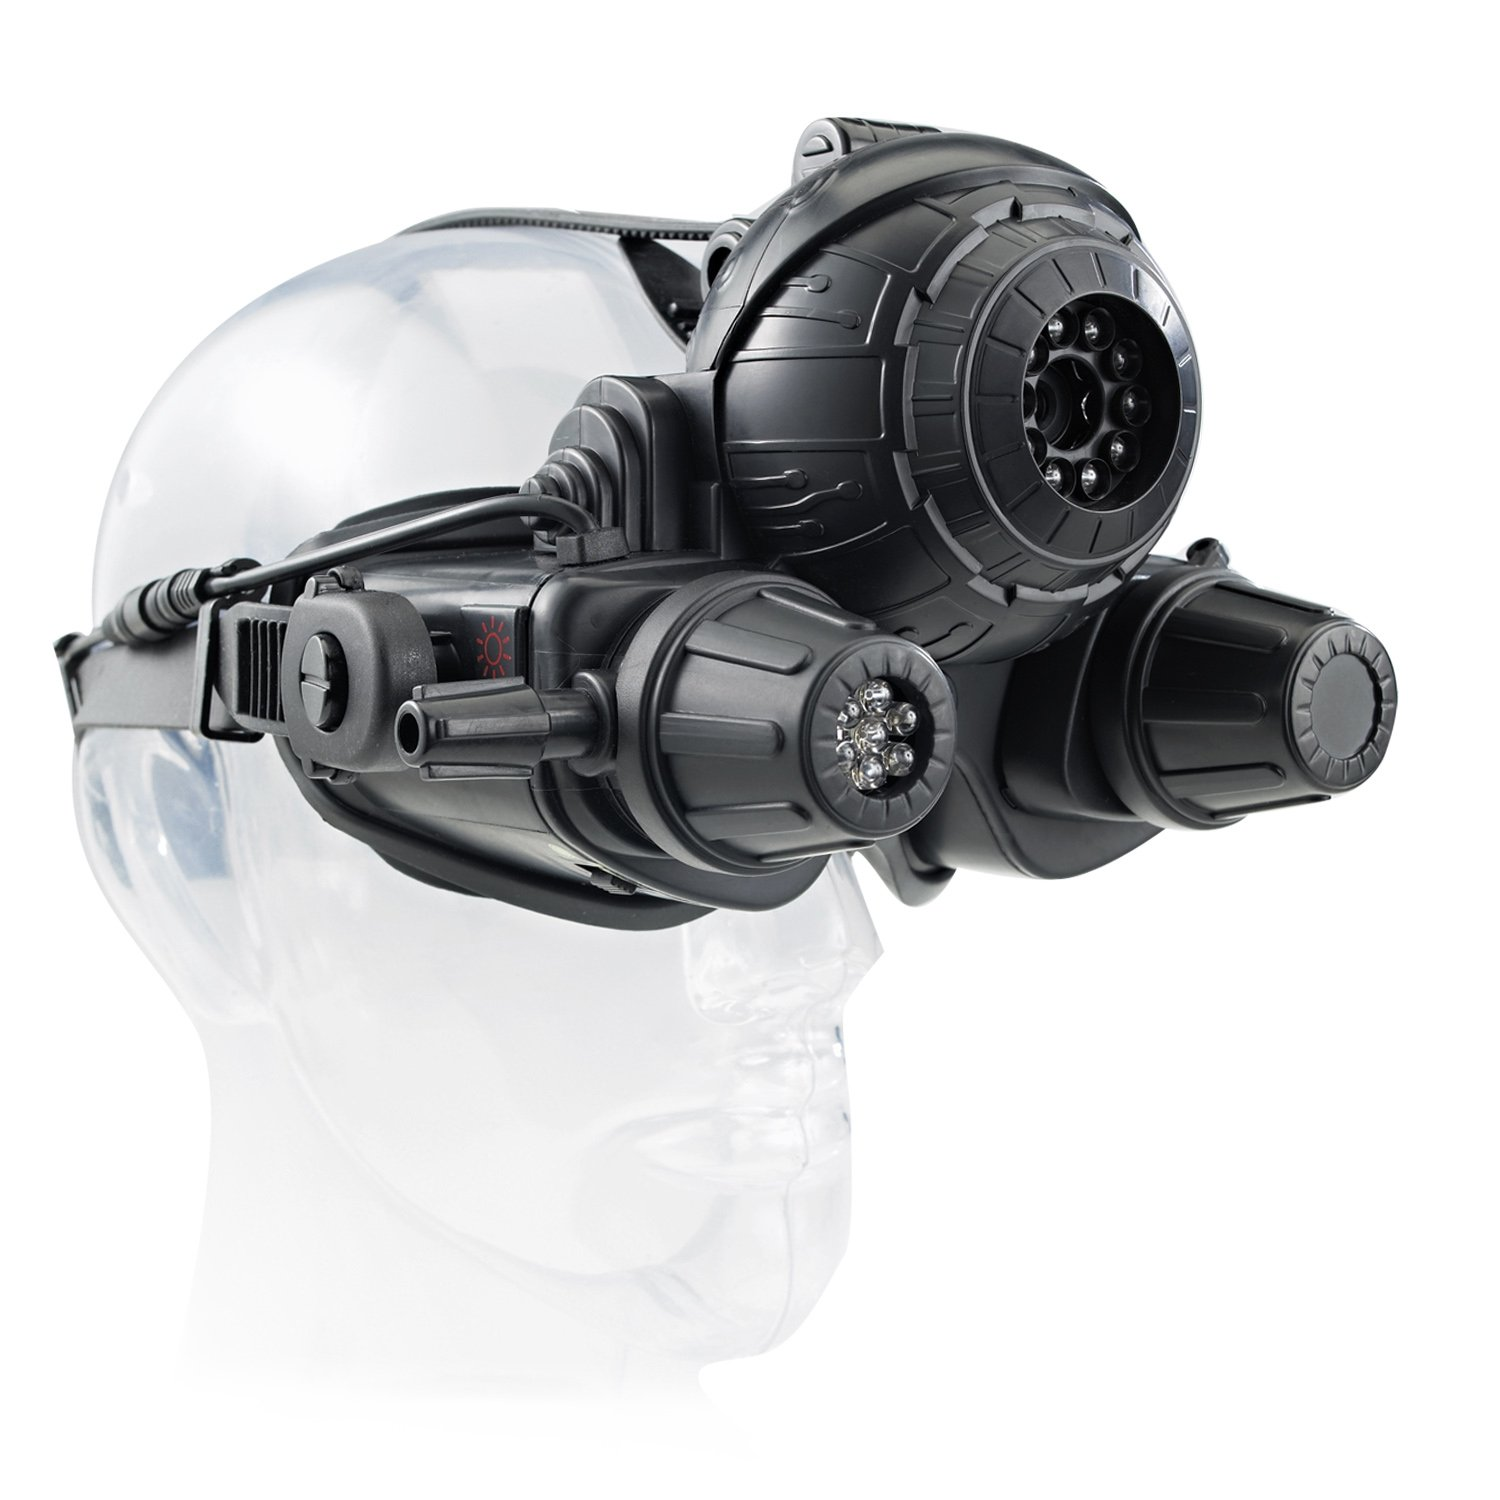 goggles cost  Amazon.com: EyeClops Night Vision Infrared Stealth Goggles: Toys ...